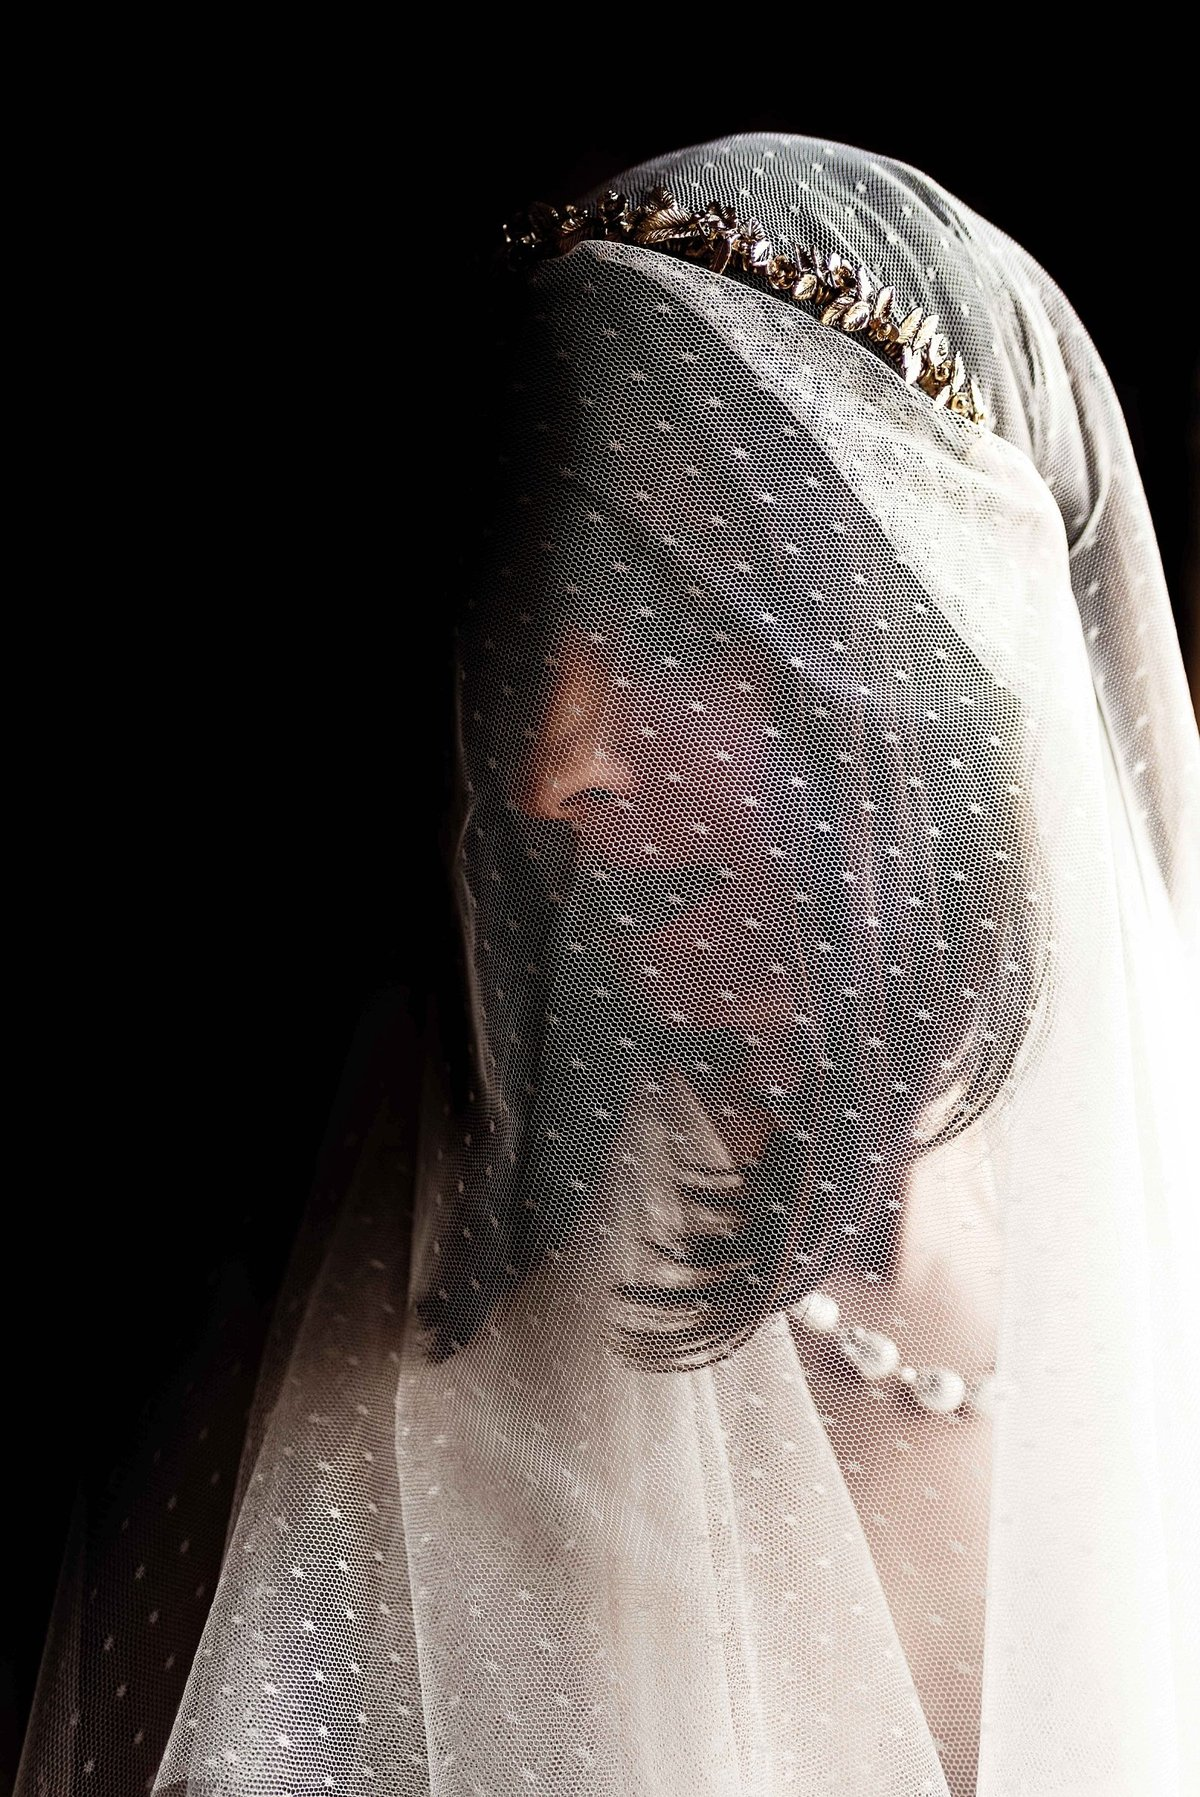 Bride in Long  Polka Dot Veil at Great Marsh Estate Bealeton, VA